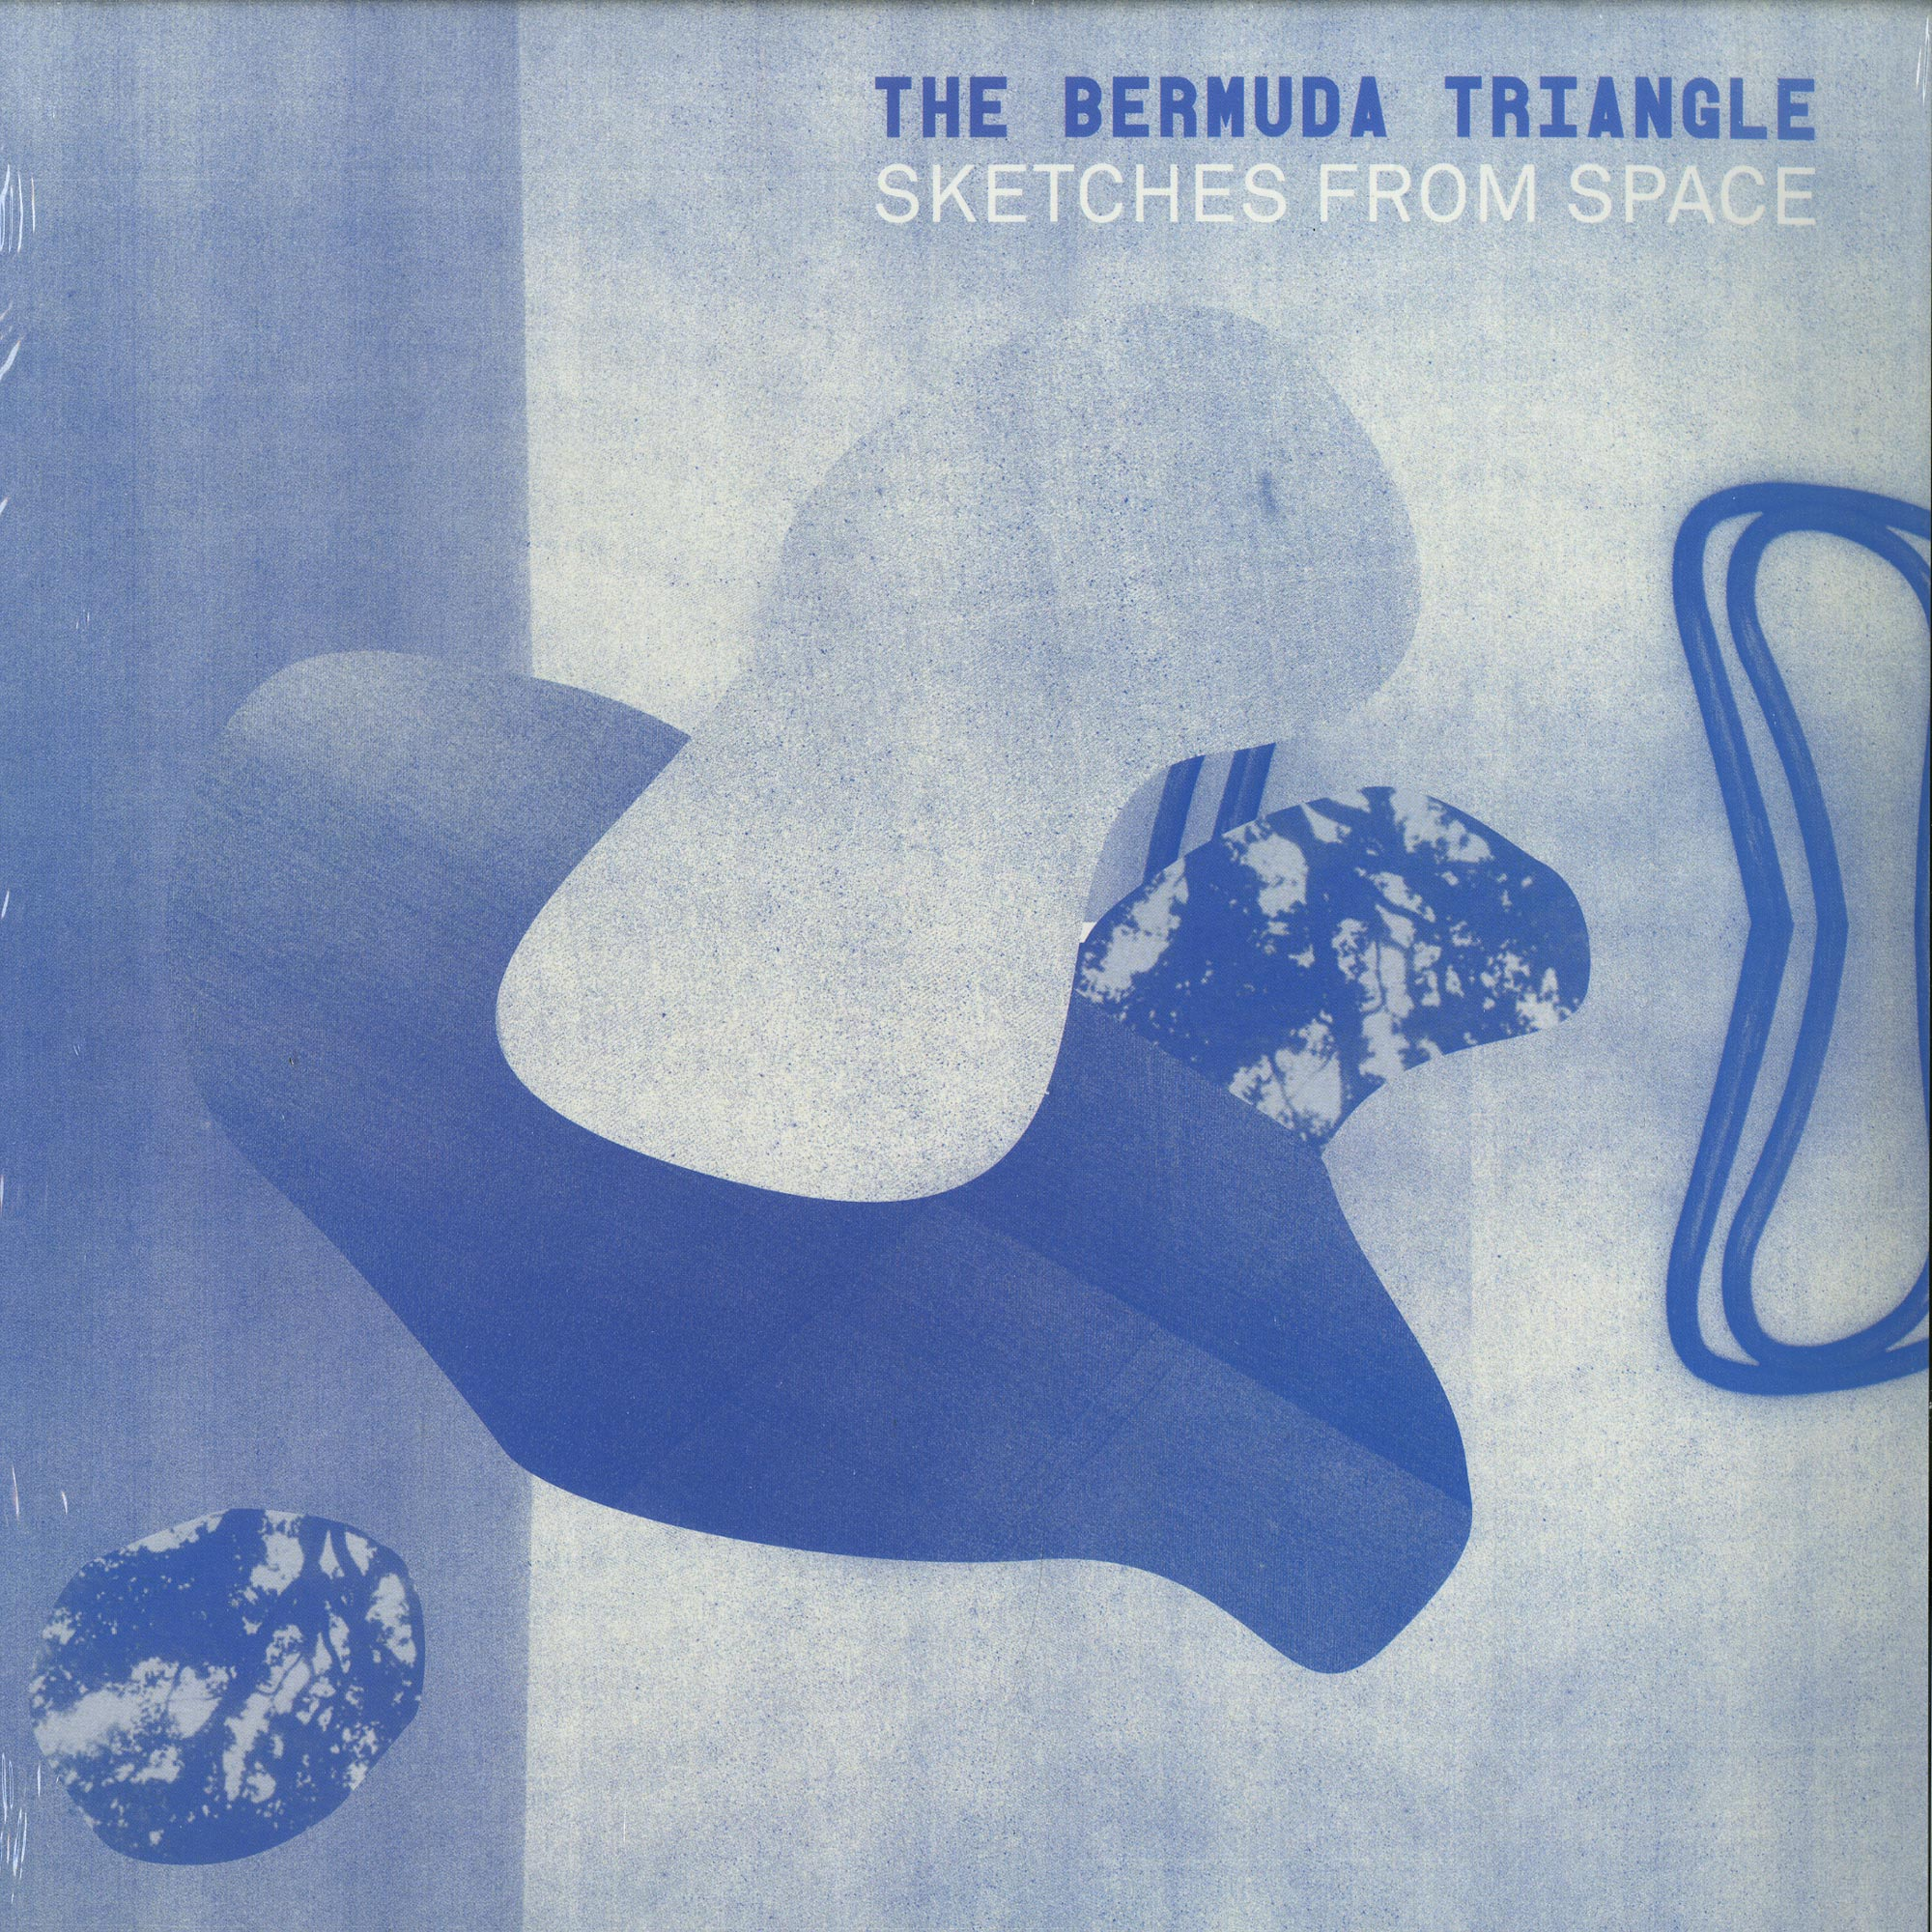 The Bermuda Triangle - SKETCHES FROM SPACE